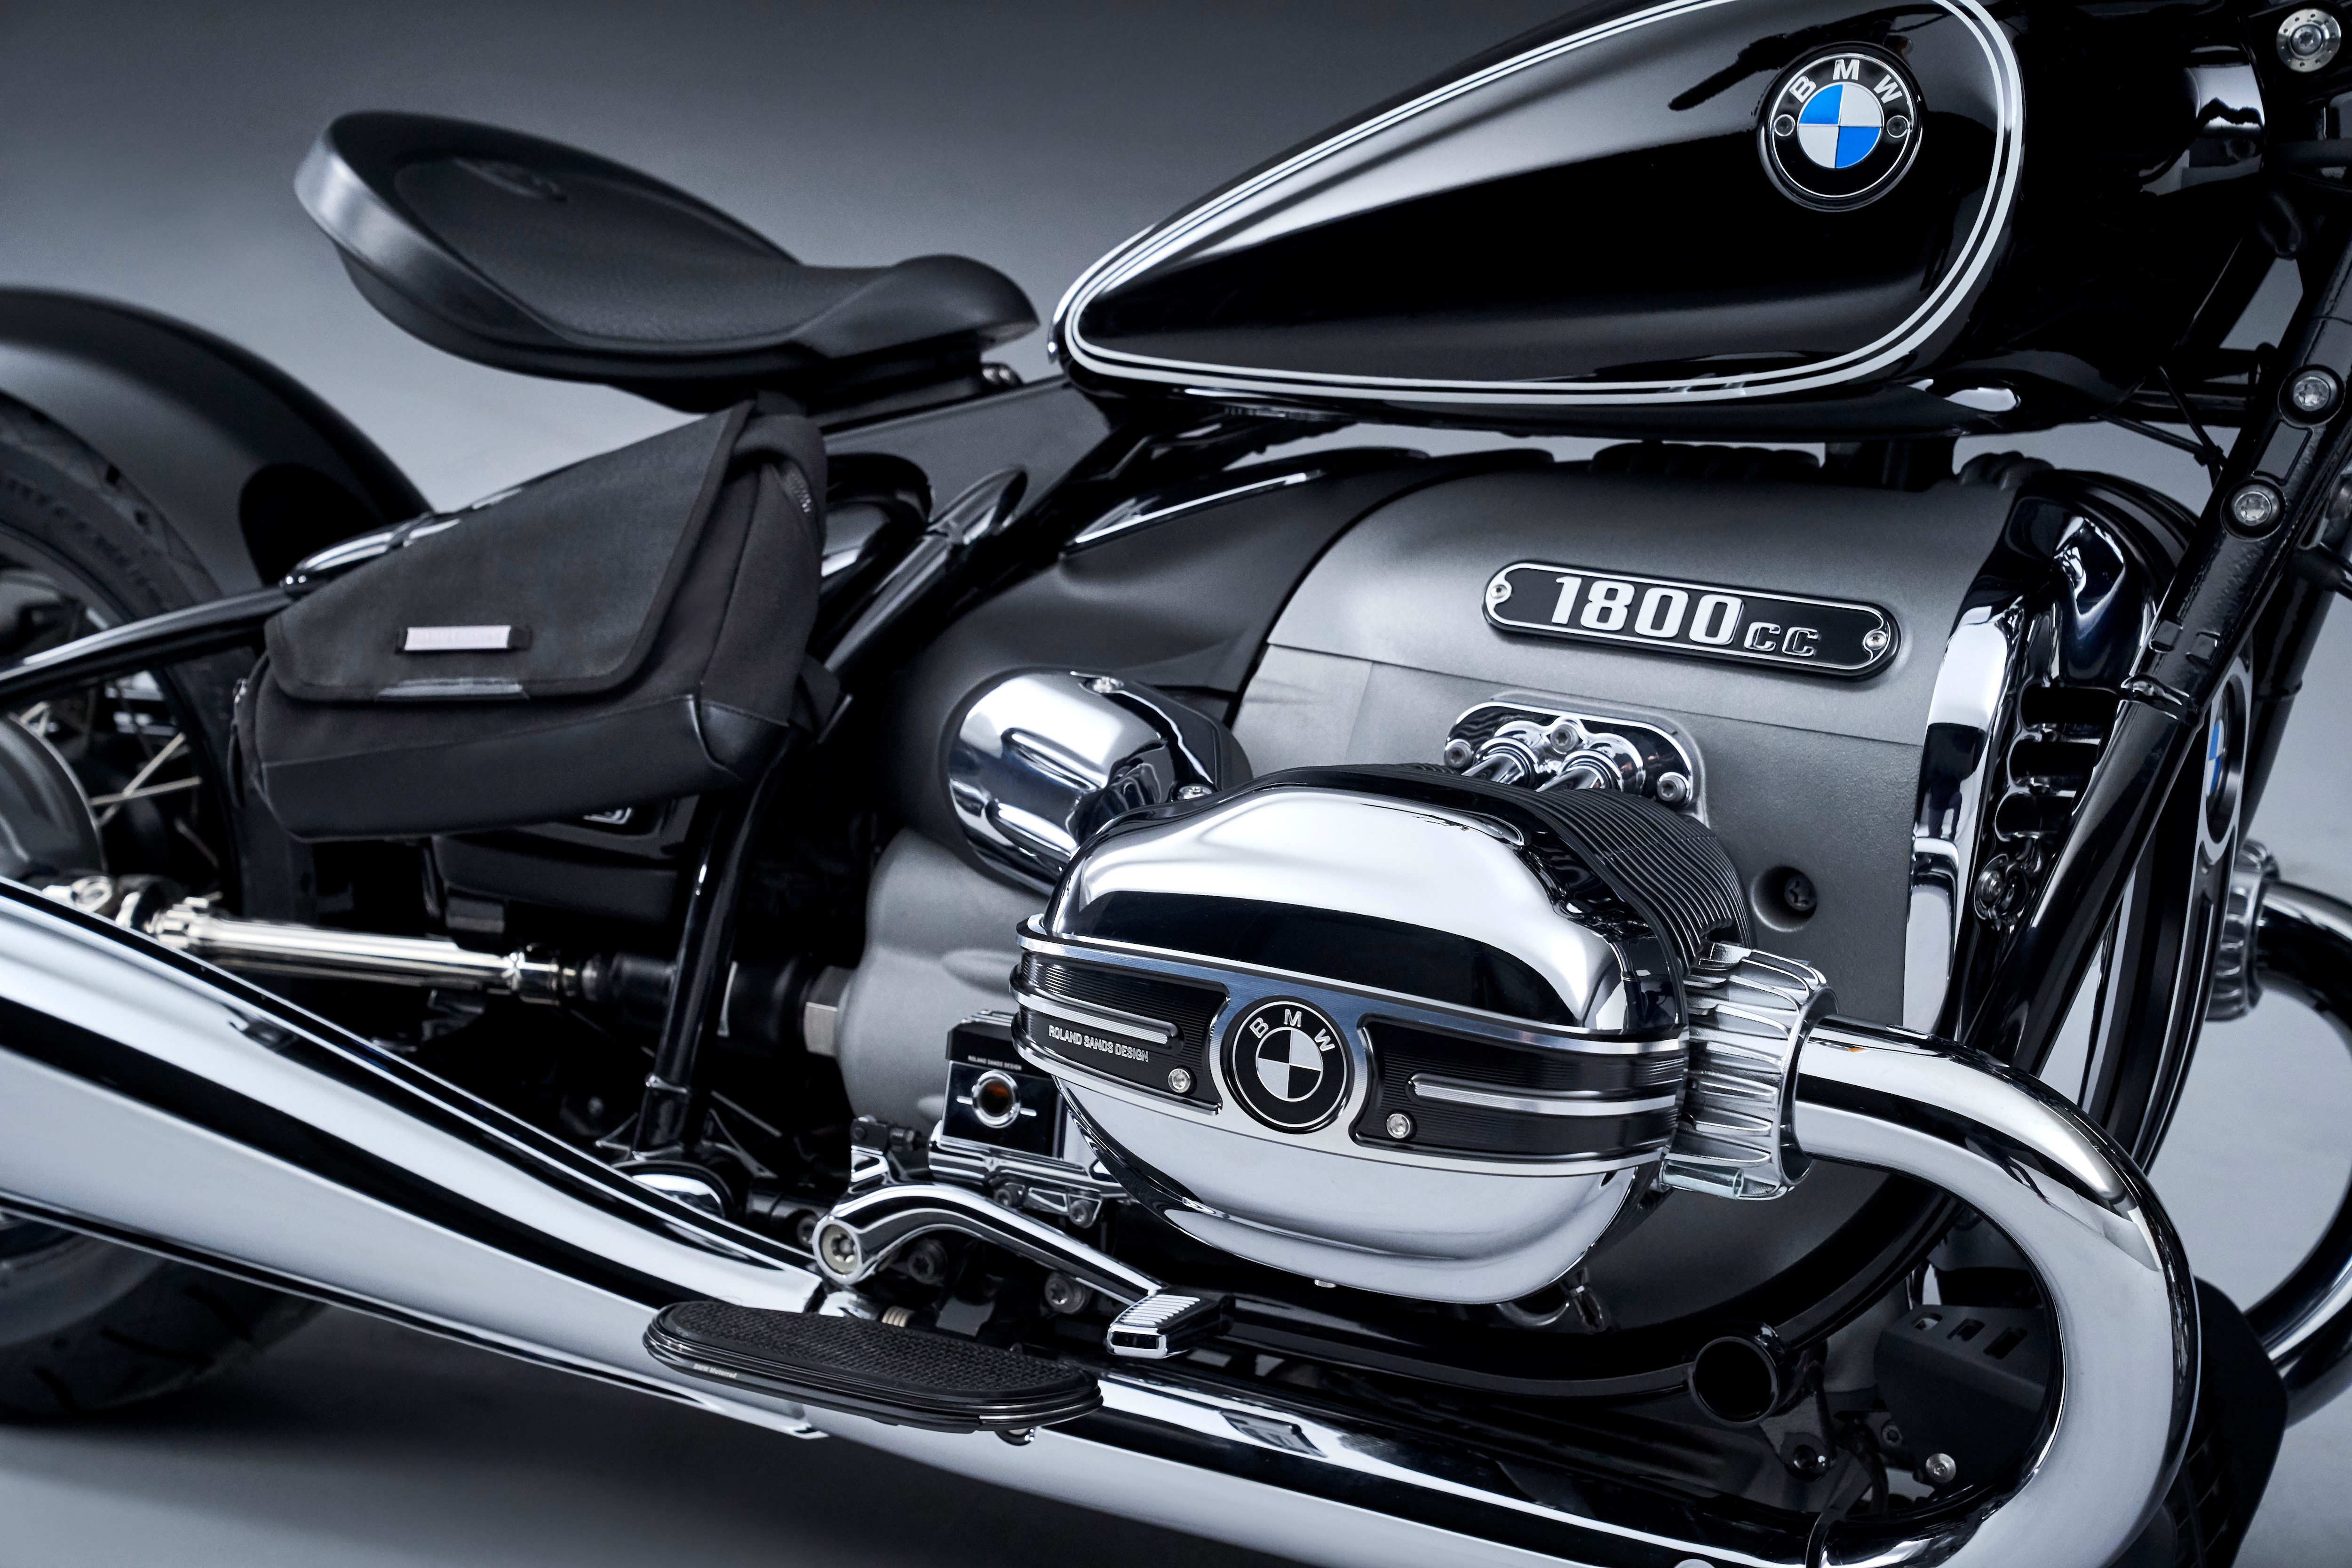 The R 18 has a cradle-type chassis which houses a 1,800 cc, two-cylinder boxer engine. The engine features a 107 mm bore and 100 mm stroke. It is claimed to be the biggest motorcycle engine developed by BMW Motorrad.